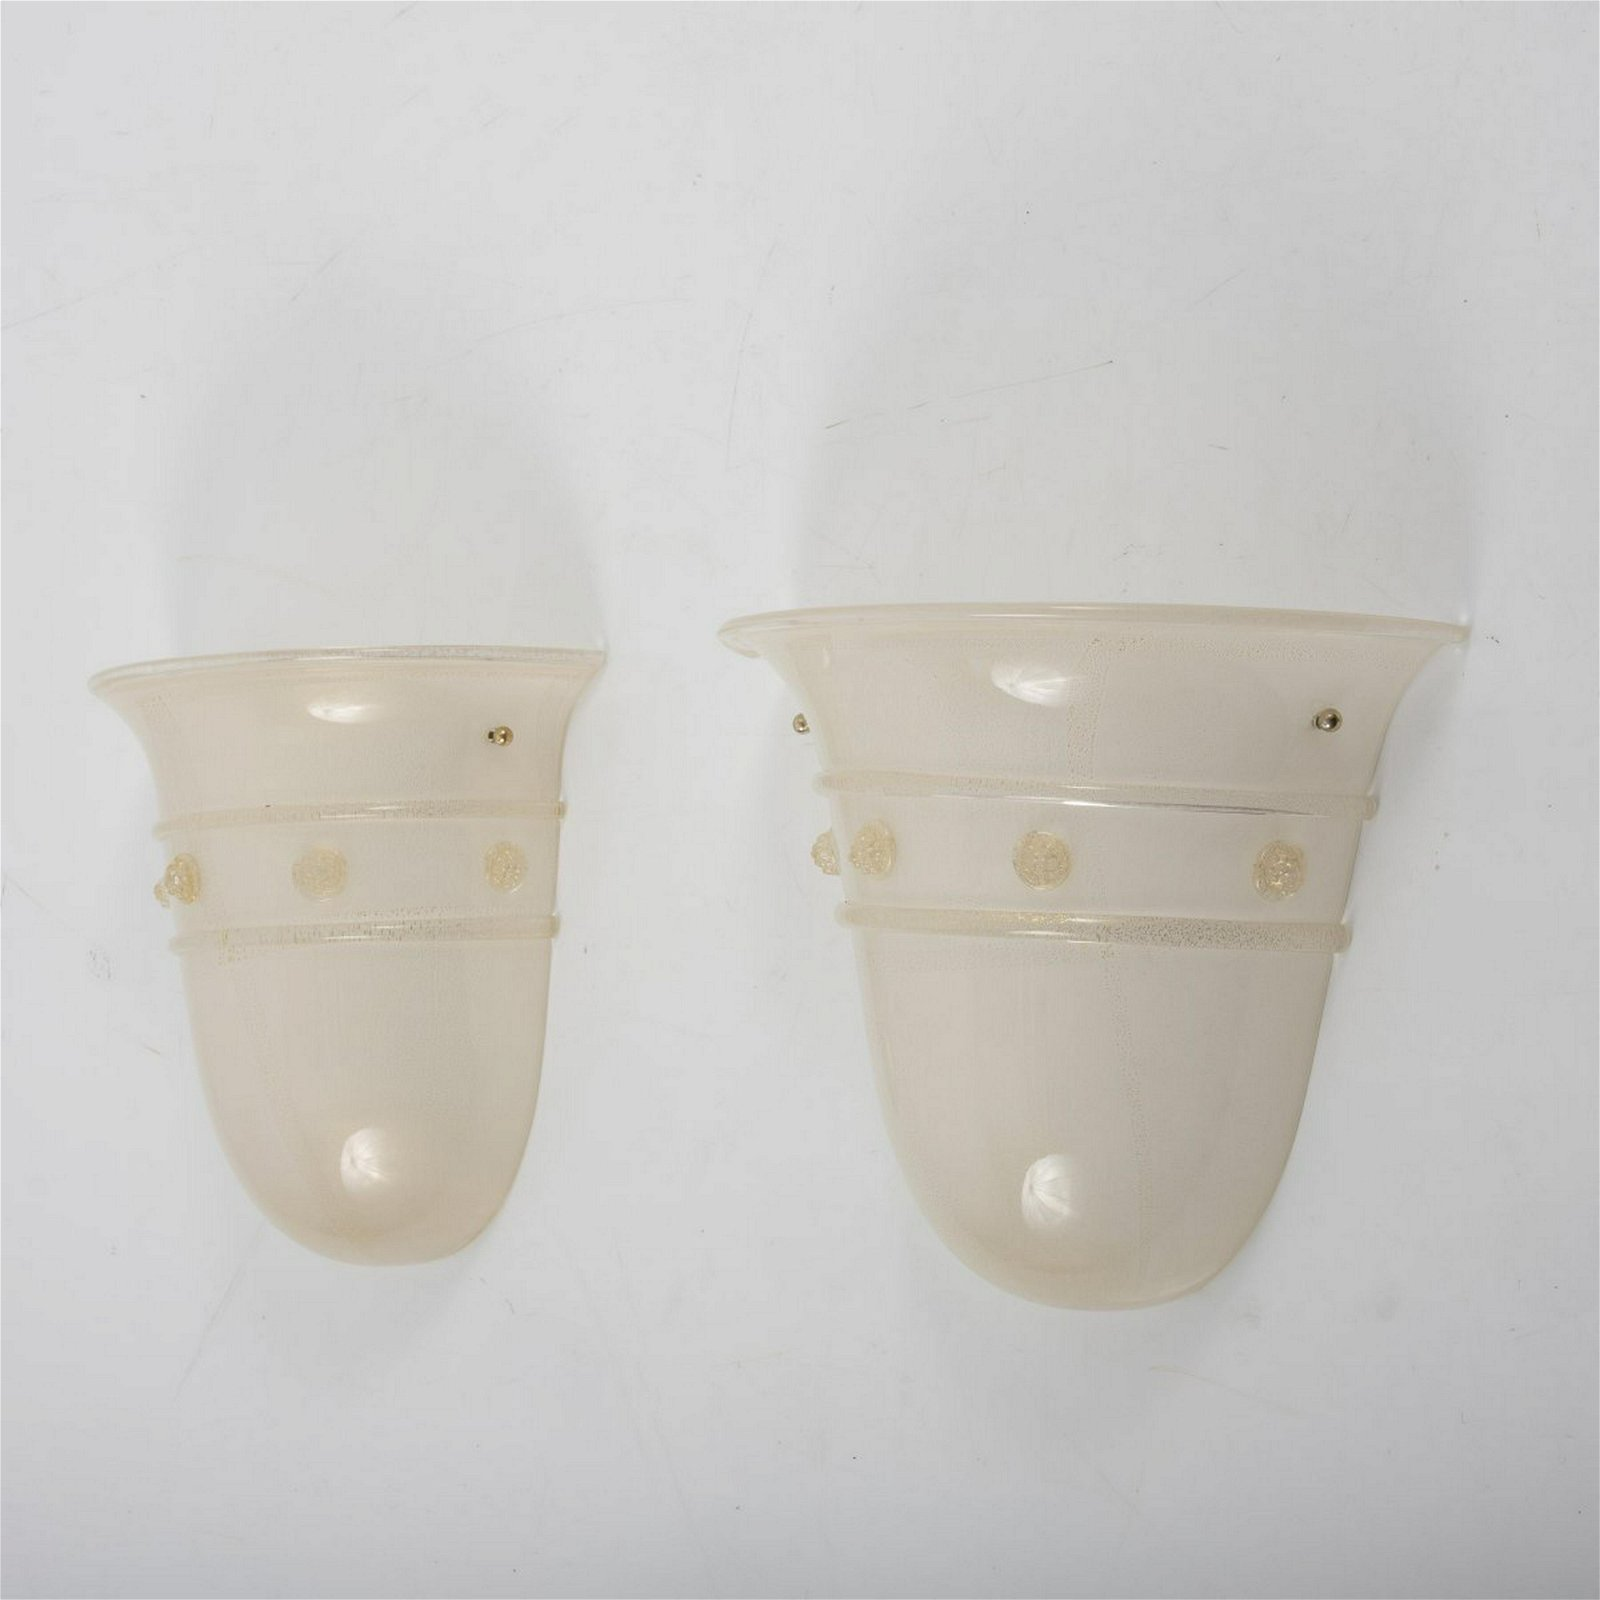 Barovier&Toso, Murano, Two wall lights, 1970/80s